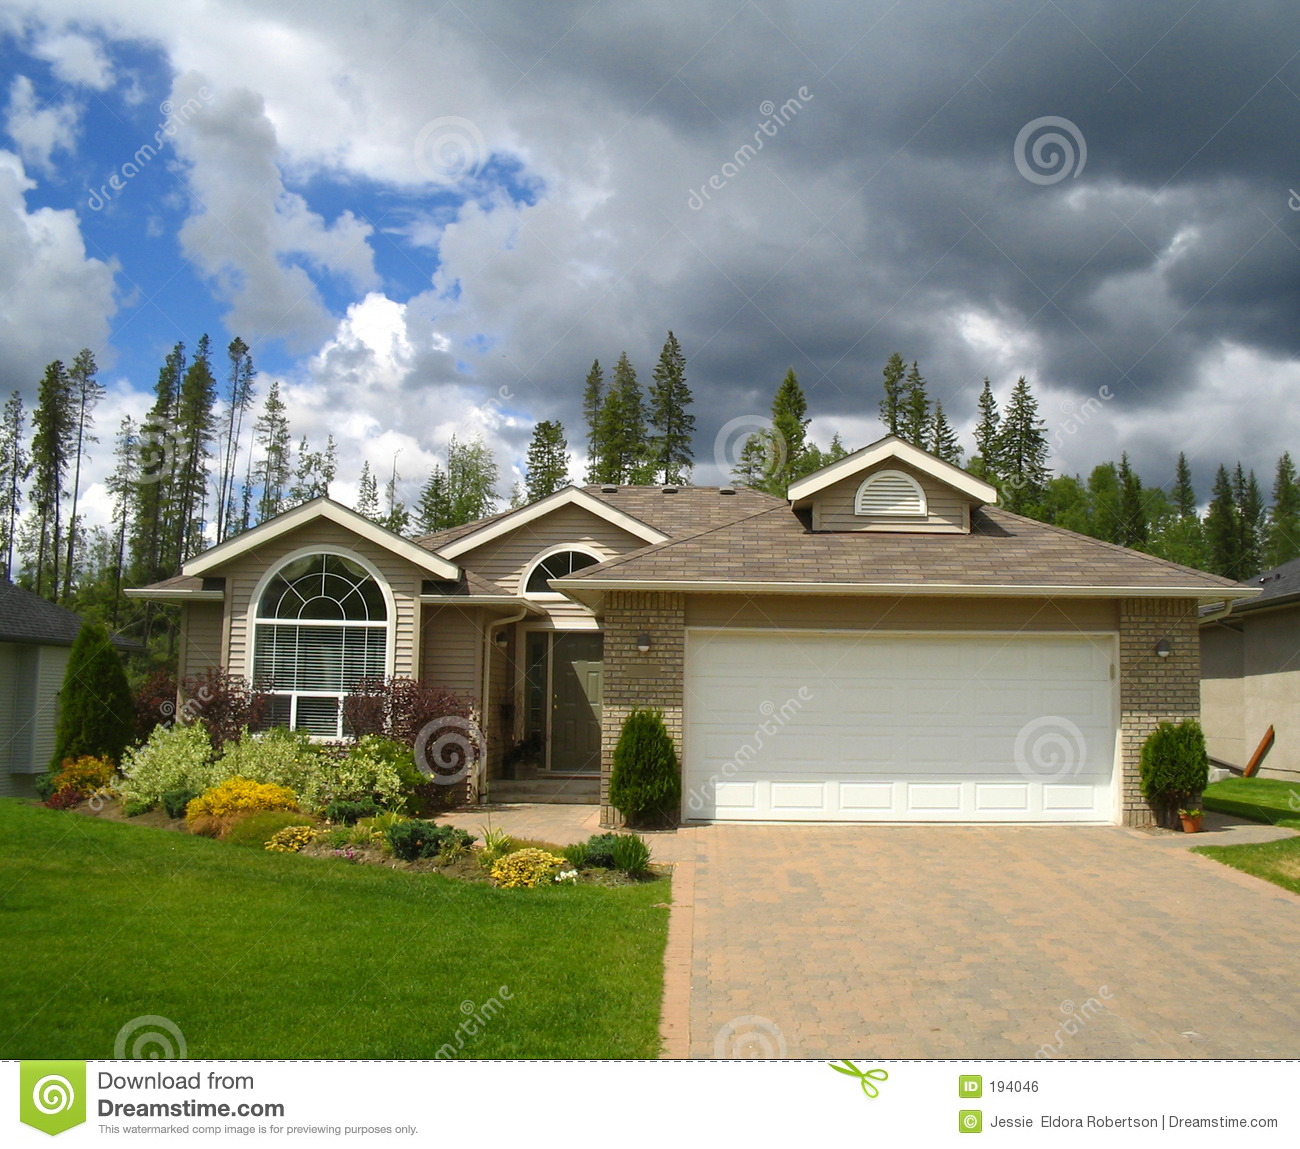 Storm clouds over nice house in the suburbs stock photo for Nice house picture